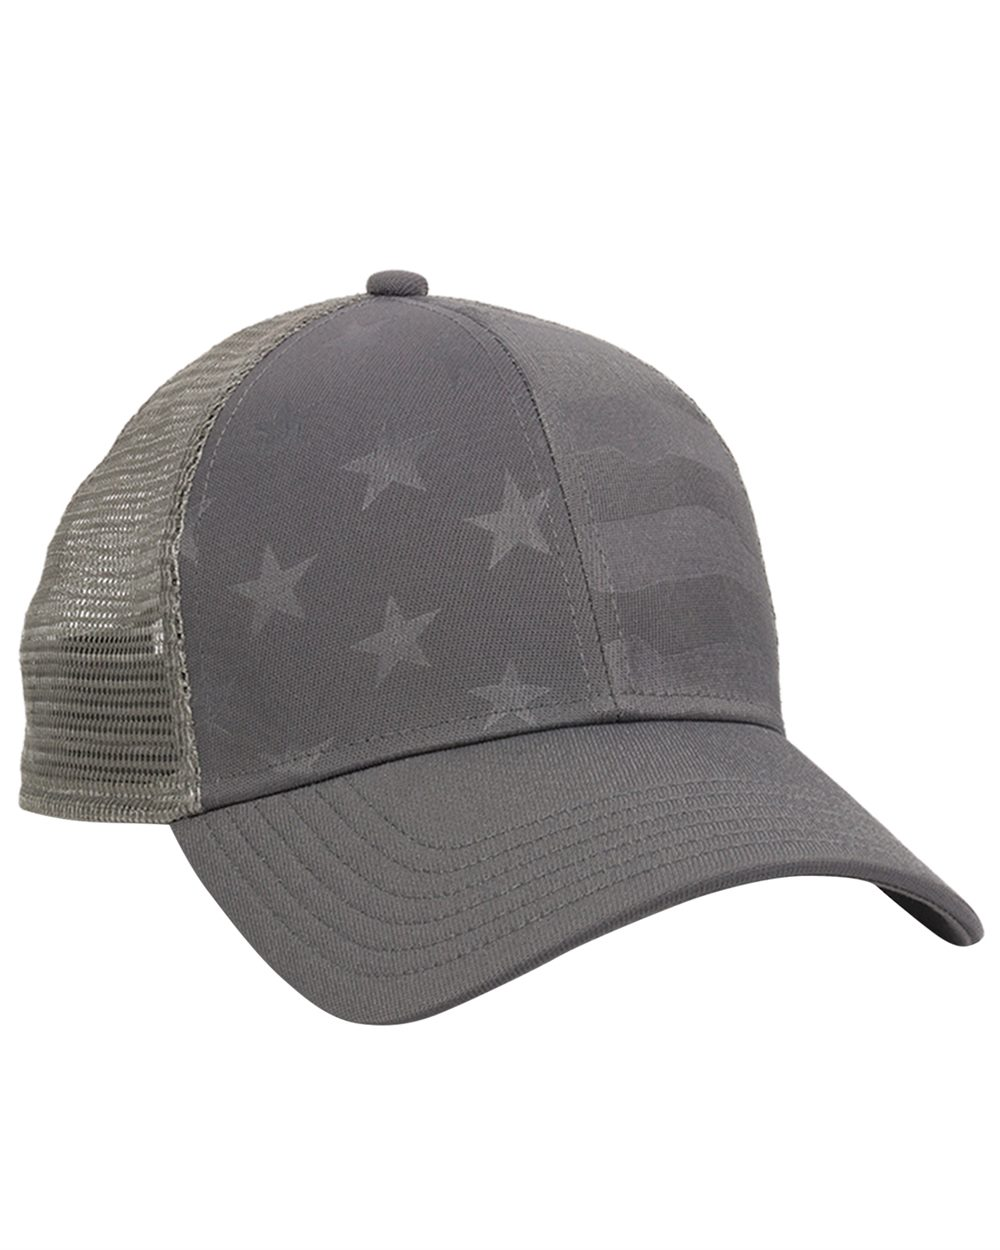 Outdoor Cap USA750M - Debossed Stars and Stripes with Mesh Back